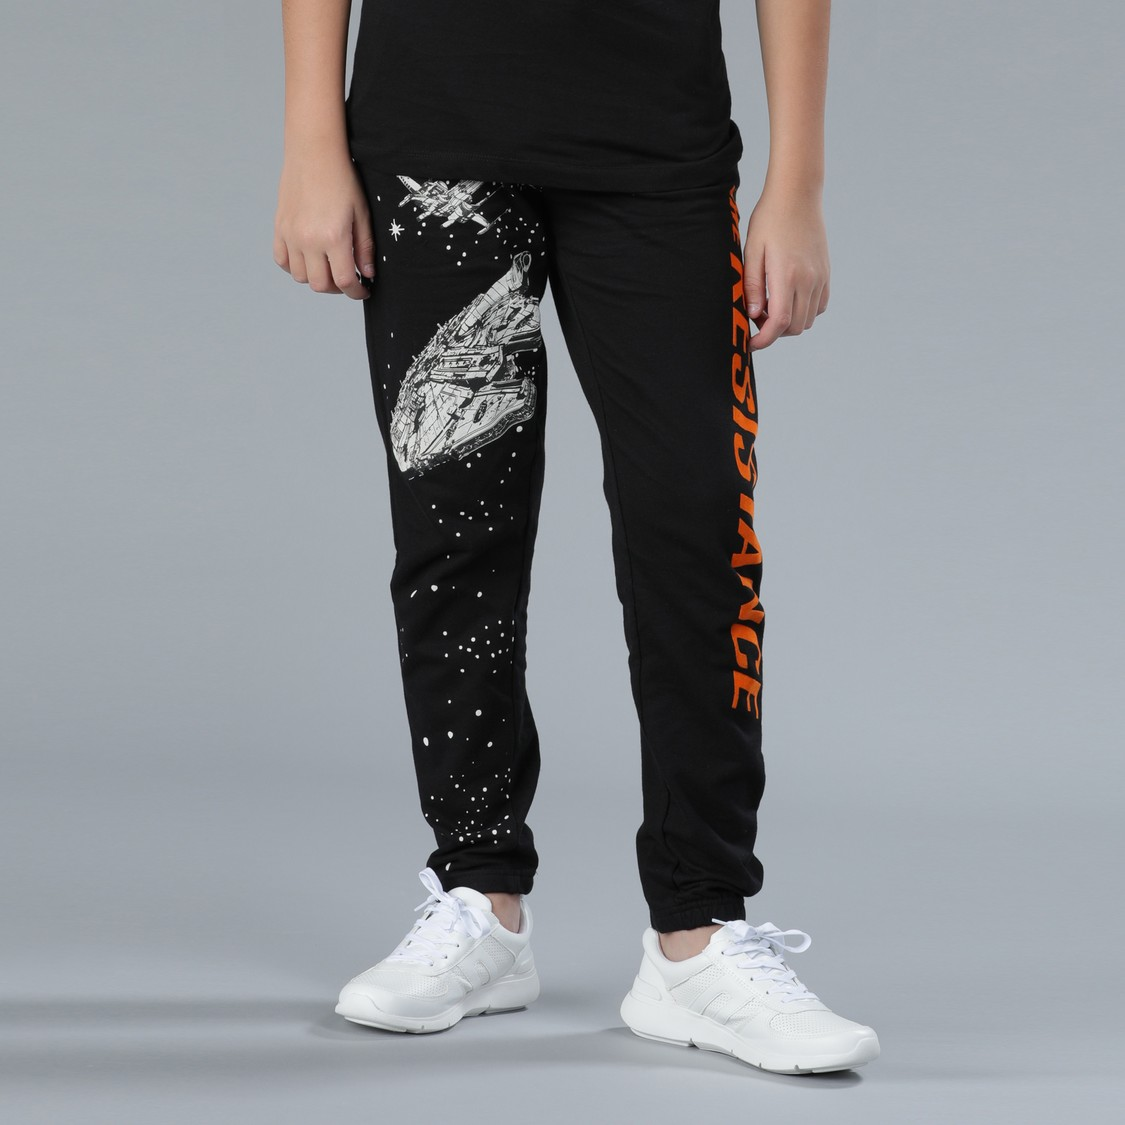 Star Wars Printed Full Length Jog Pants